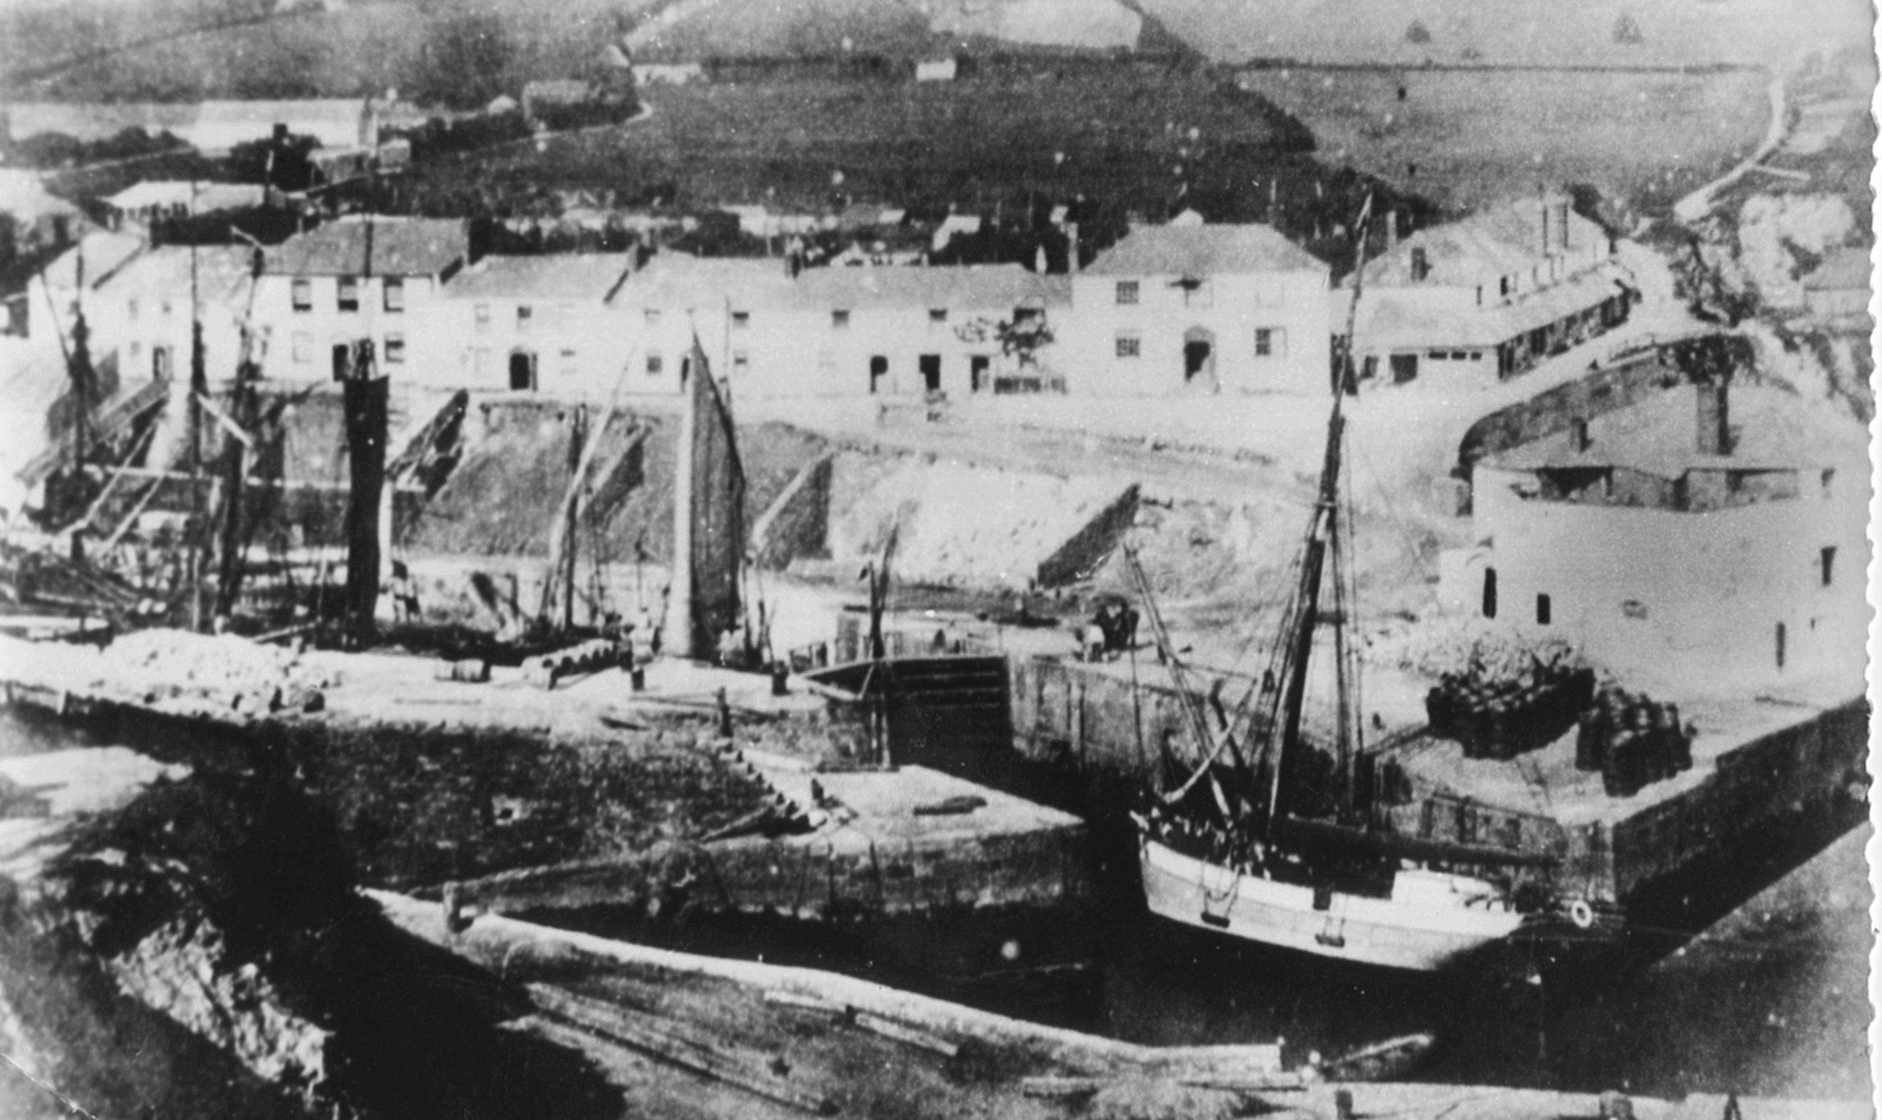 OLD PICTURE OF THE HARBOUR AND GATES